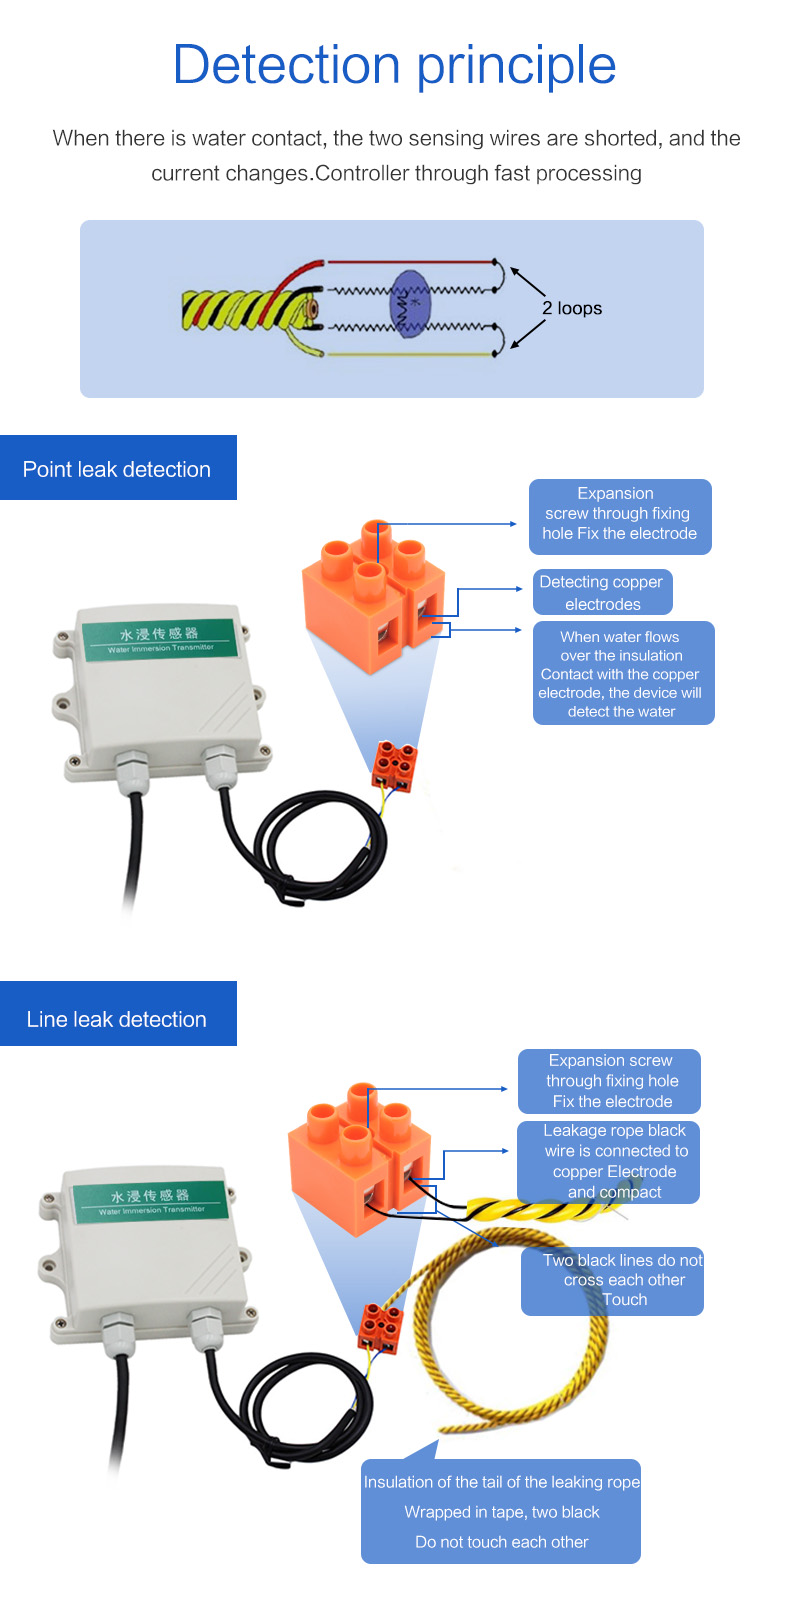 water leak detect used to Industry home Usage Water Leak Detection Alarm